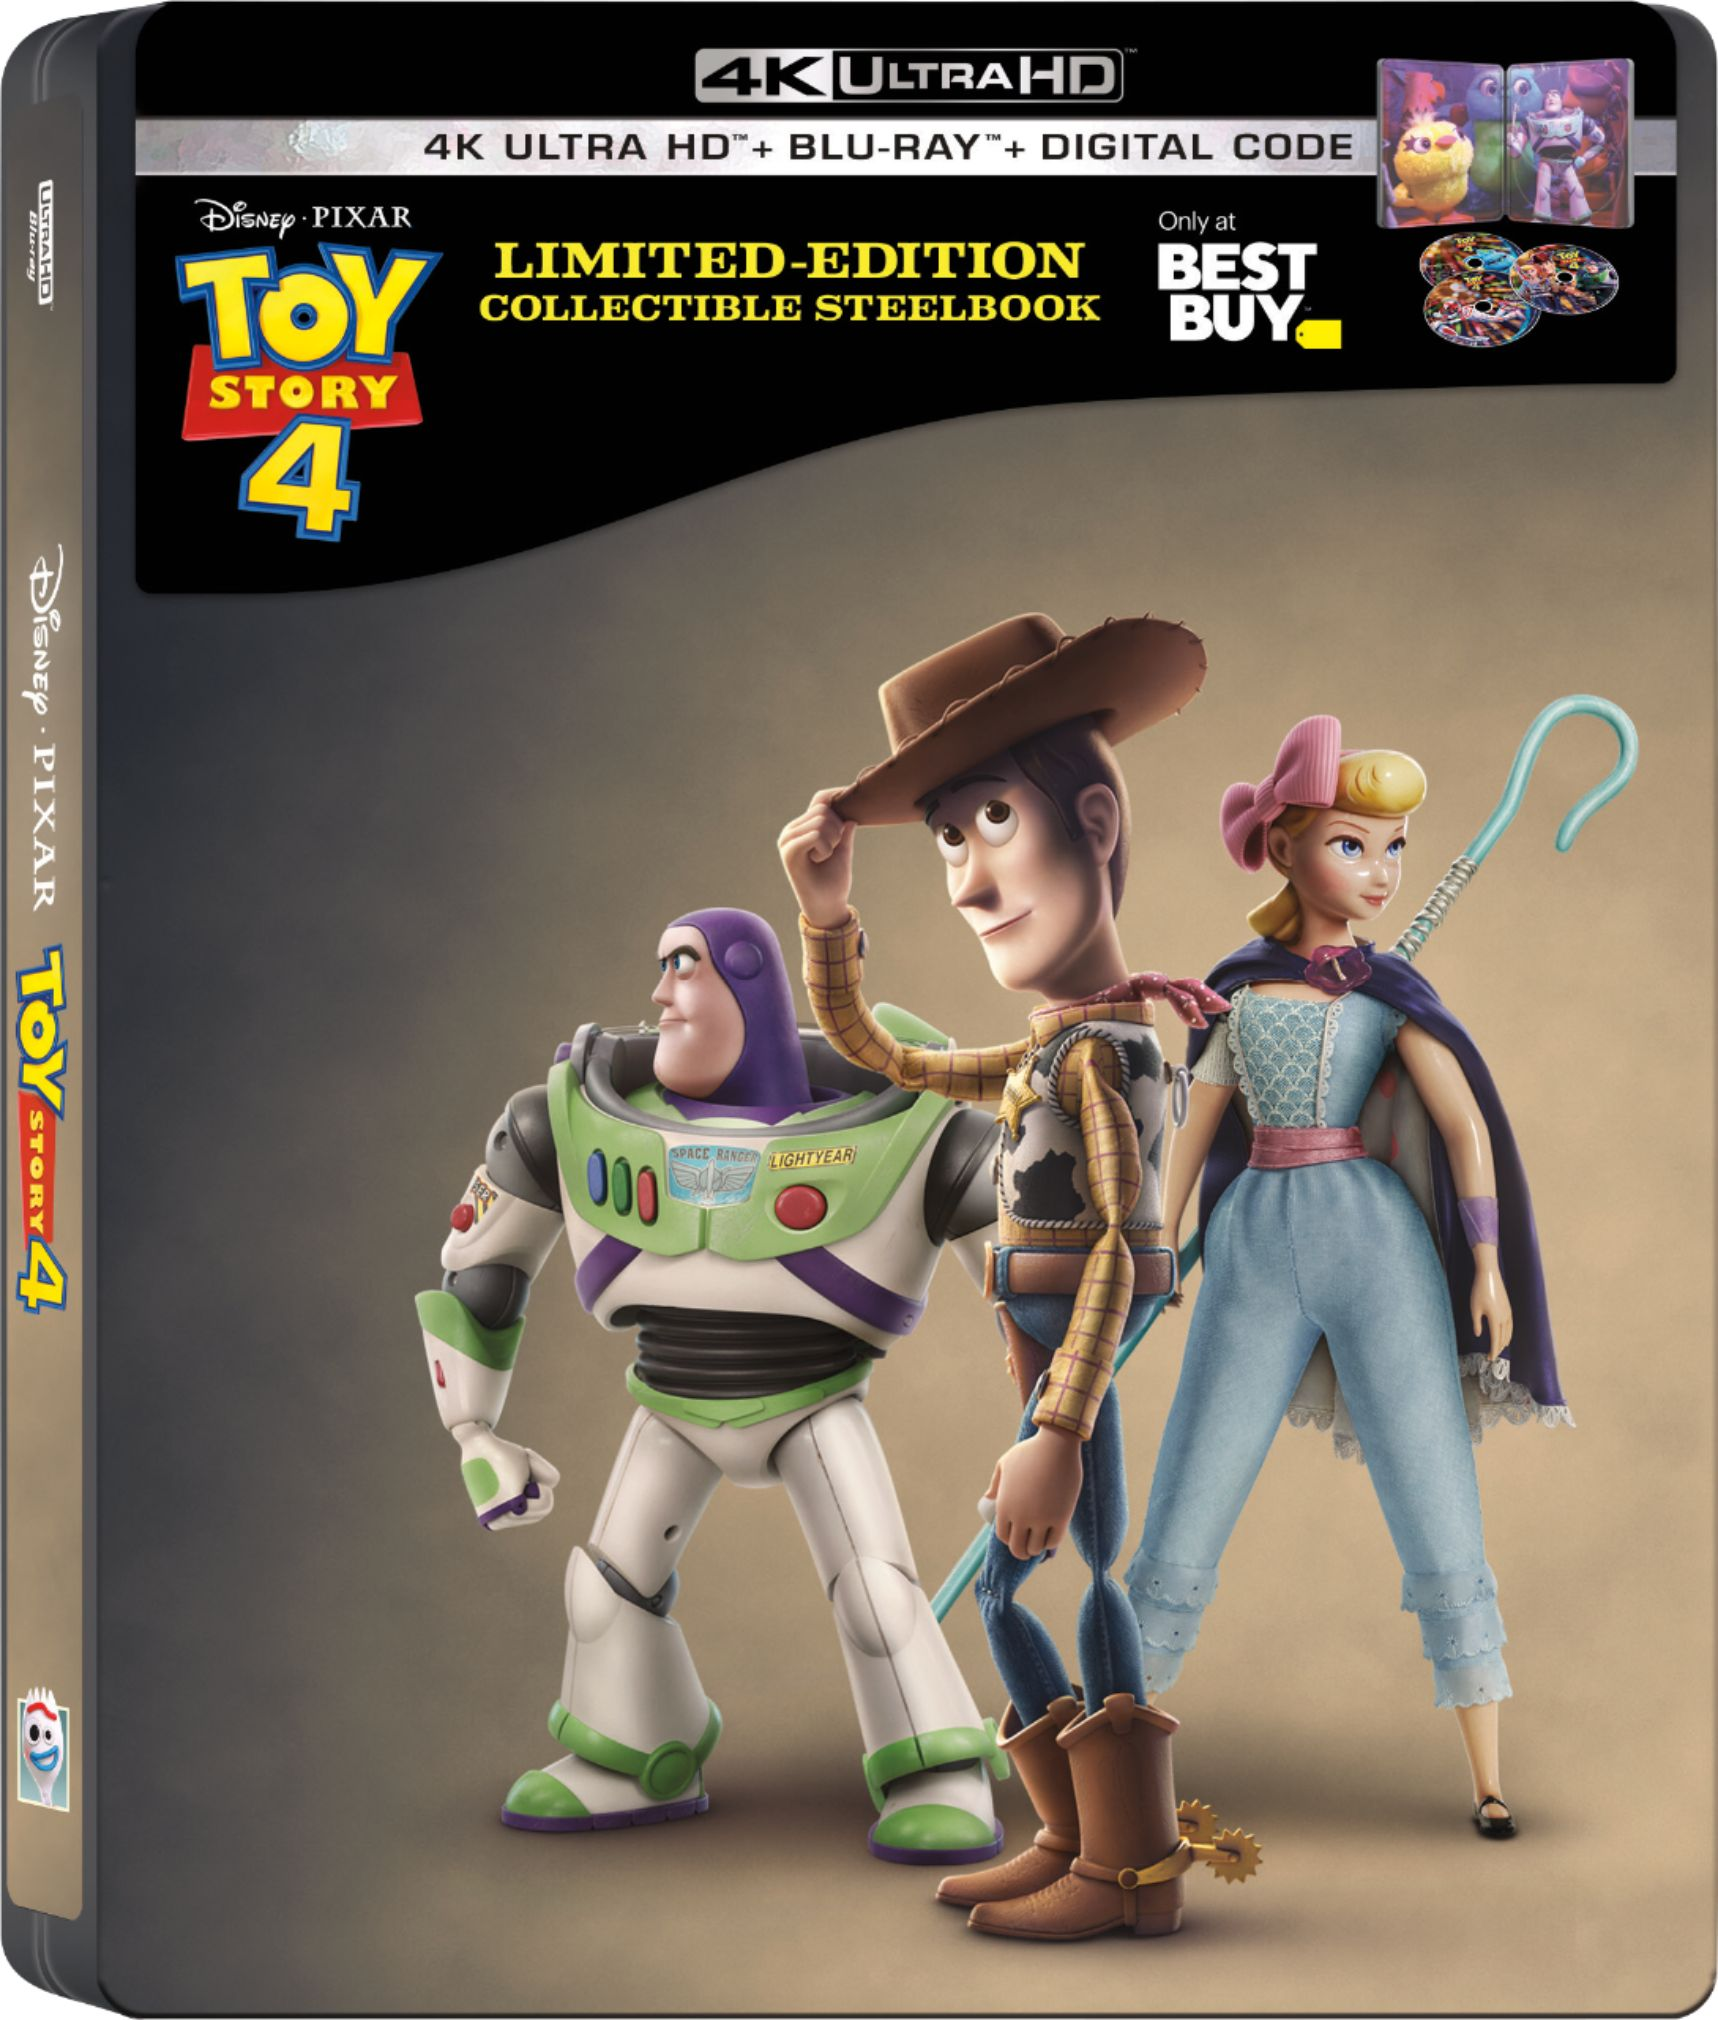 Get the Collectors Edition Toy Story 4 SteelBook at Best Buy